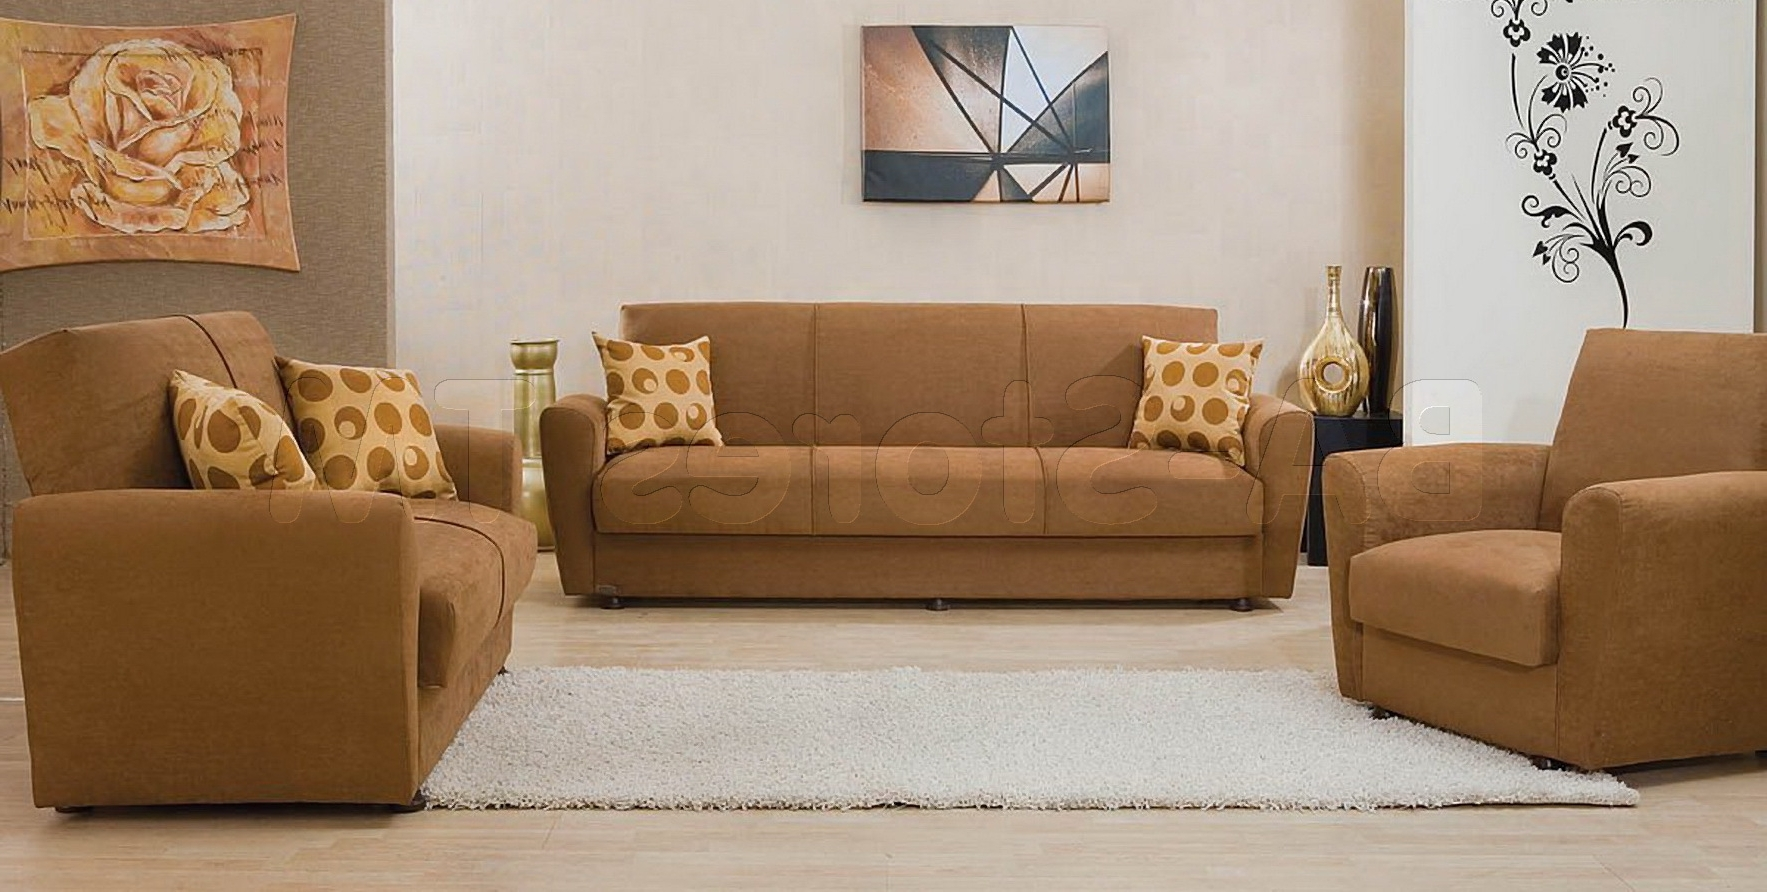 Well Known Casual Sofas And Chairs – Fjellkjeden Throughout Sofas And Chairs (View 9 of 15)